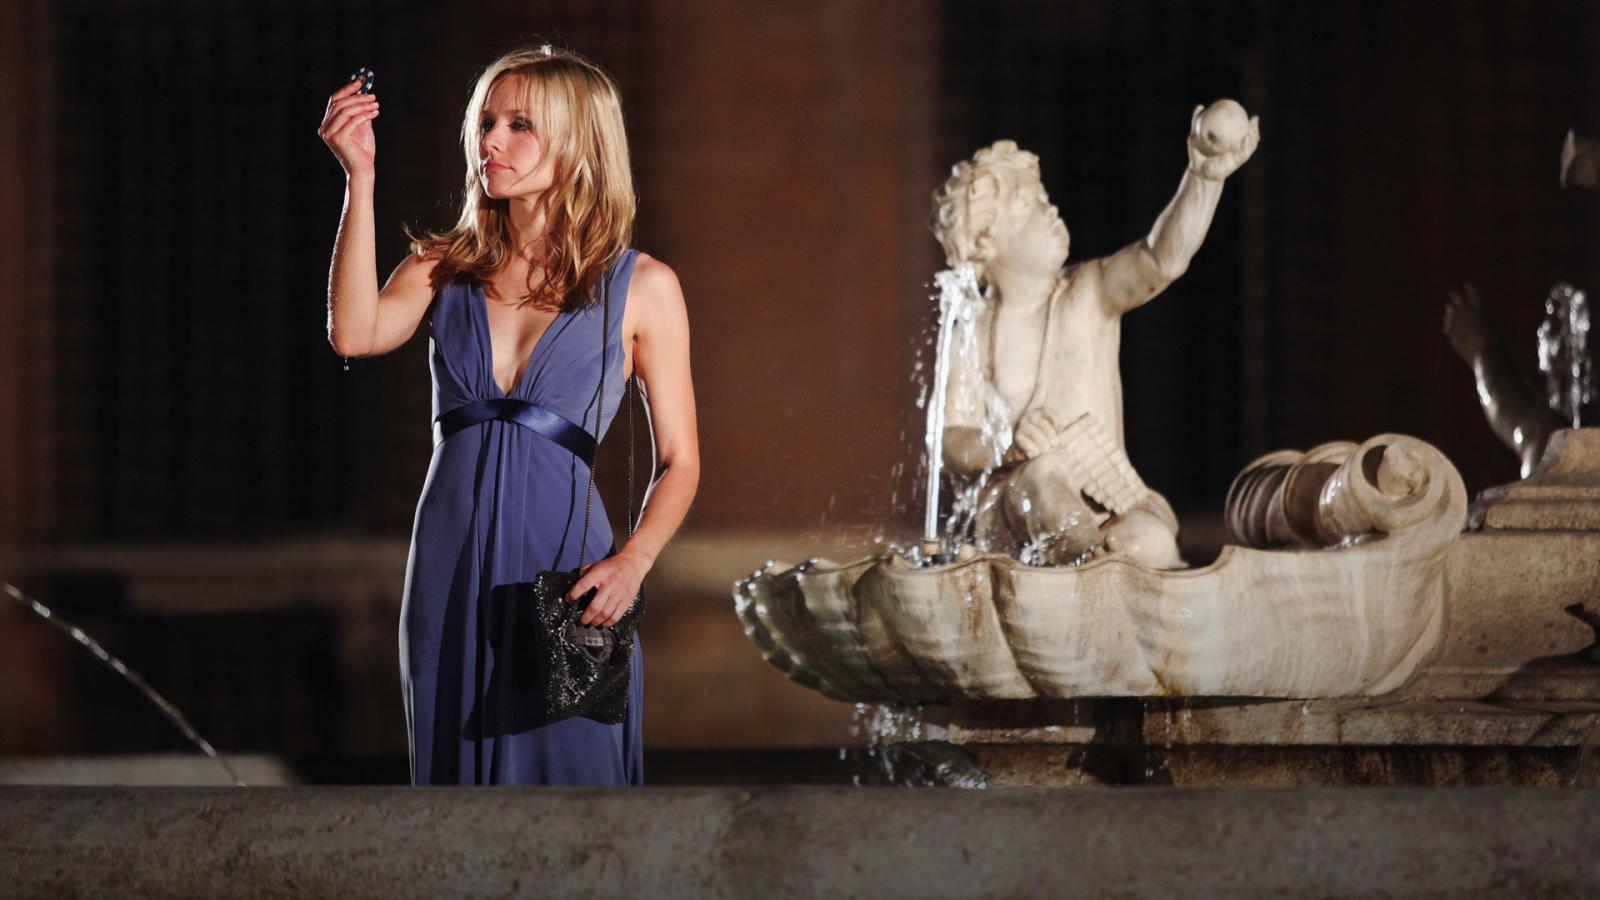 Kristen Bell goes to throw a coin in the Fountain of Love in When in Rome (2010)